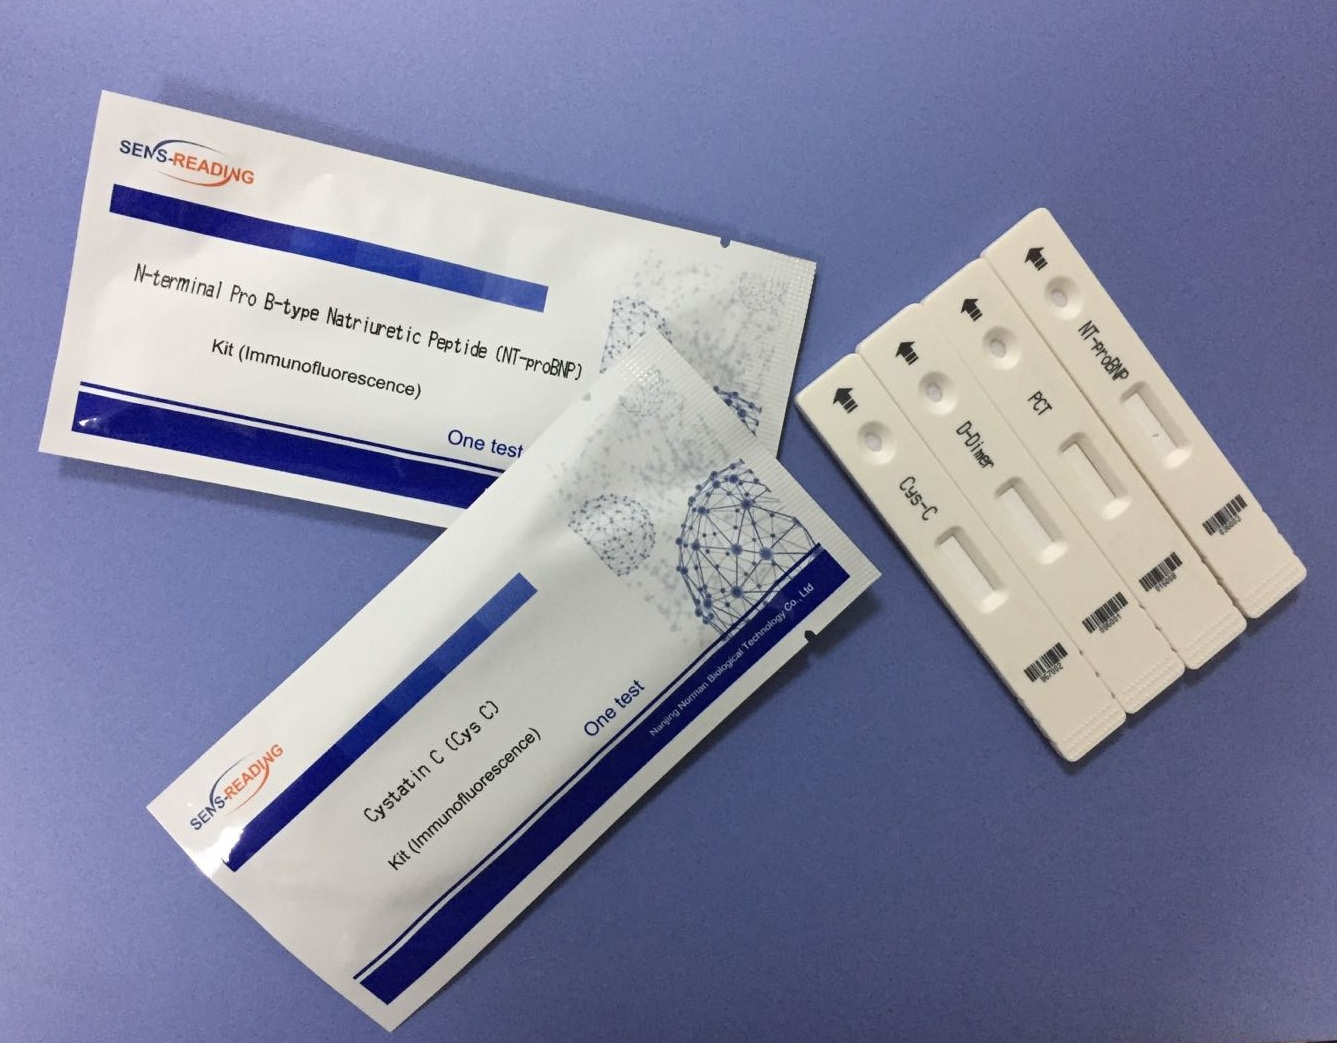 Kidney Function B2Mg Test Kits Rapid Test Poct Manufacturers, Kidney Function B2Mg Test Kits Rapid Test Poct Factory, Supply Kidney Function B2Mg Test Kits Rapid Test Poct